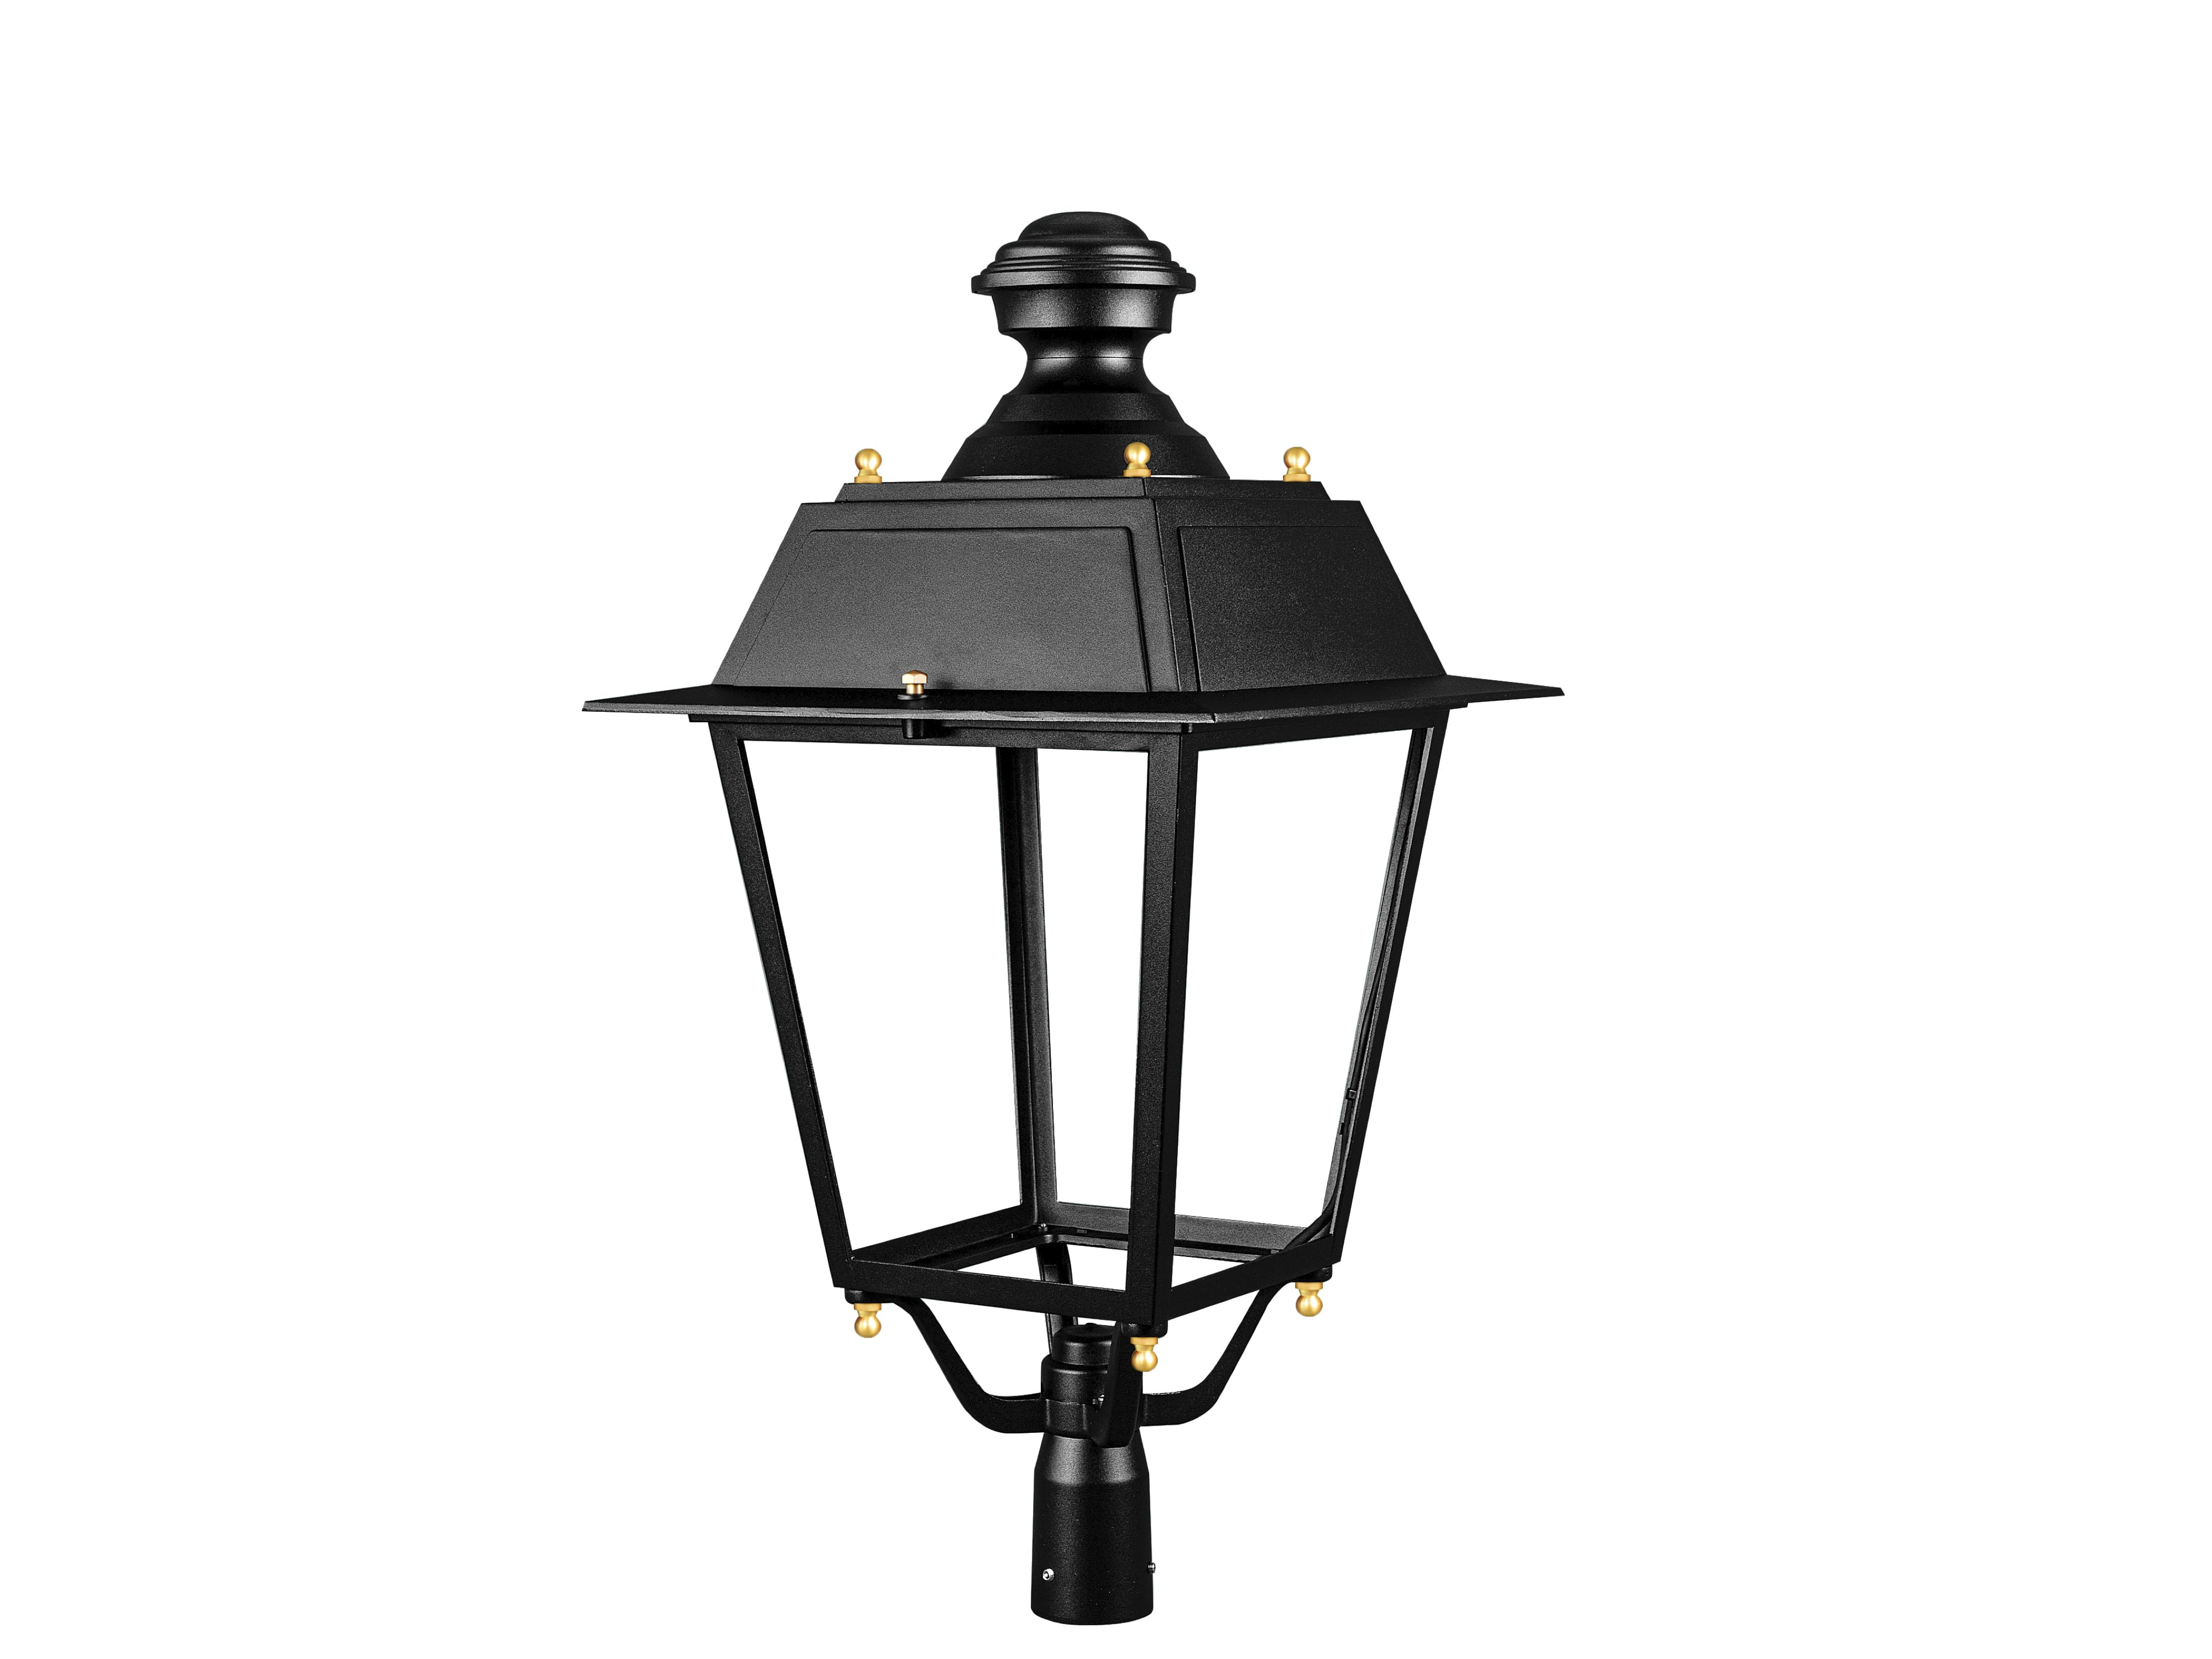 Lightgogo kit is LED post top light, offers the world's first motion detectable, programmable, smart dimming, energy efficiency, and together with the quality of light for classic outdoor lanterns.